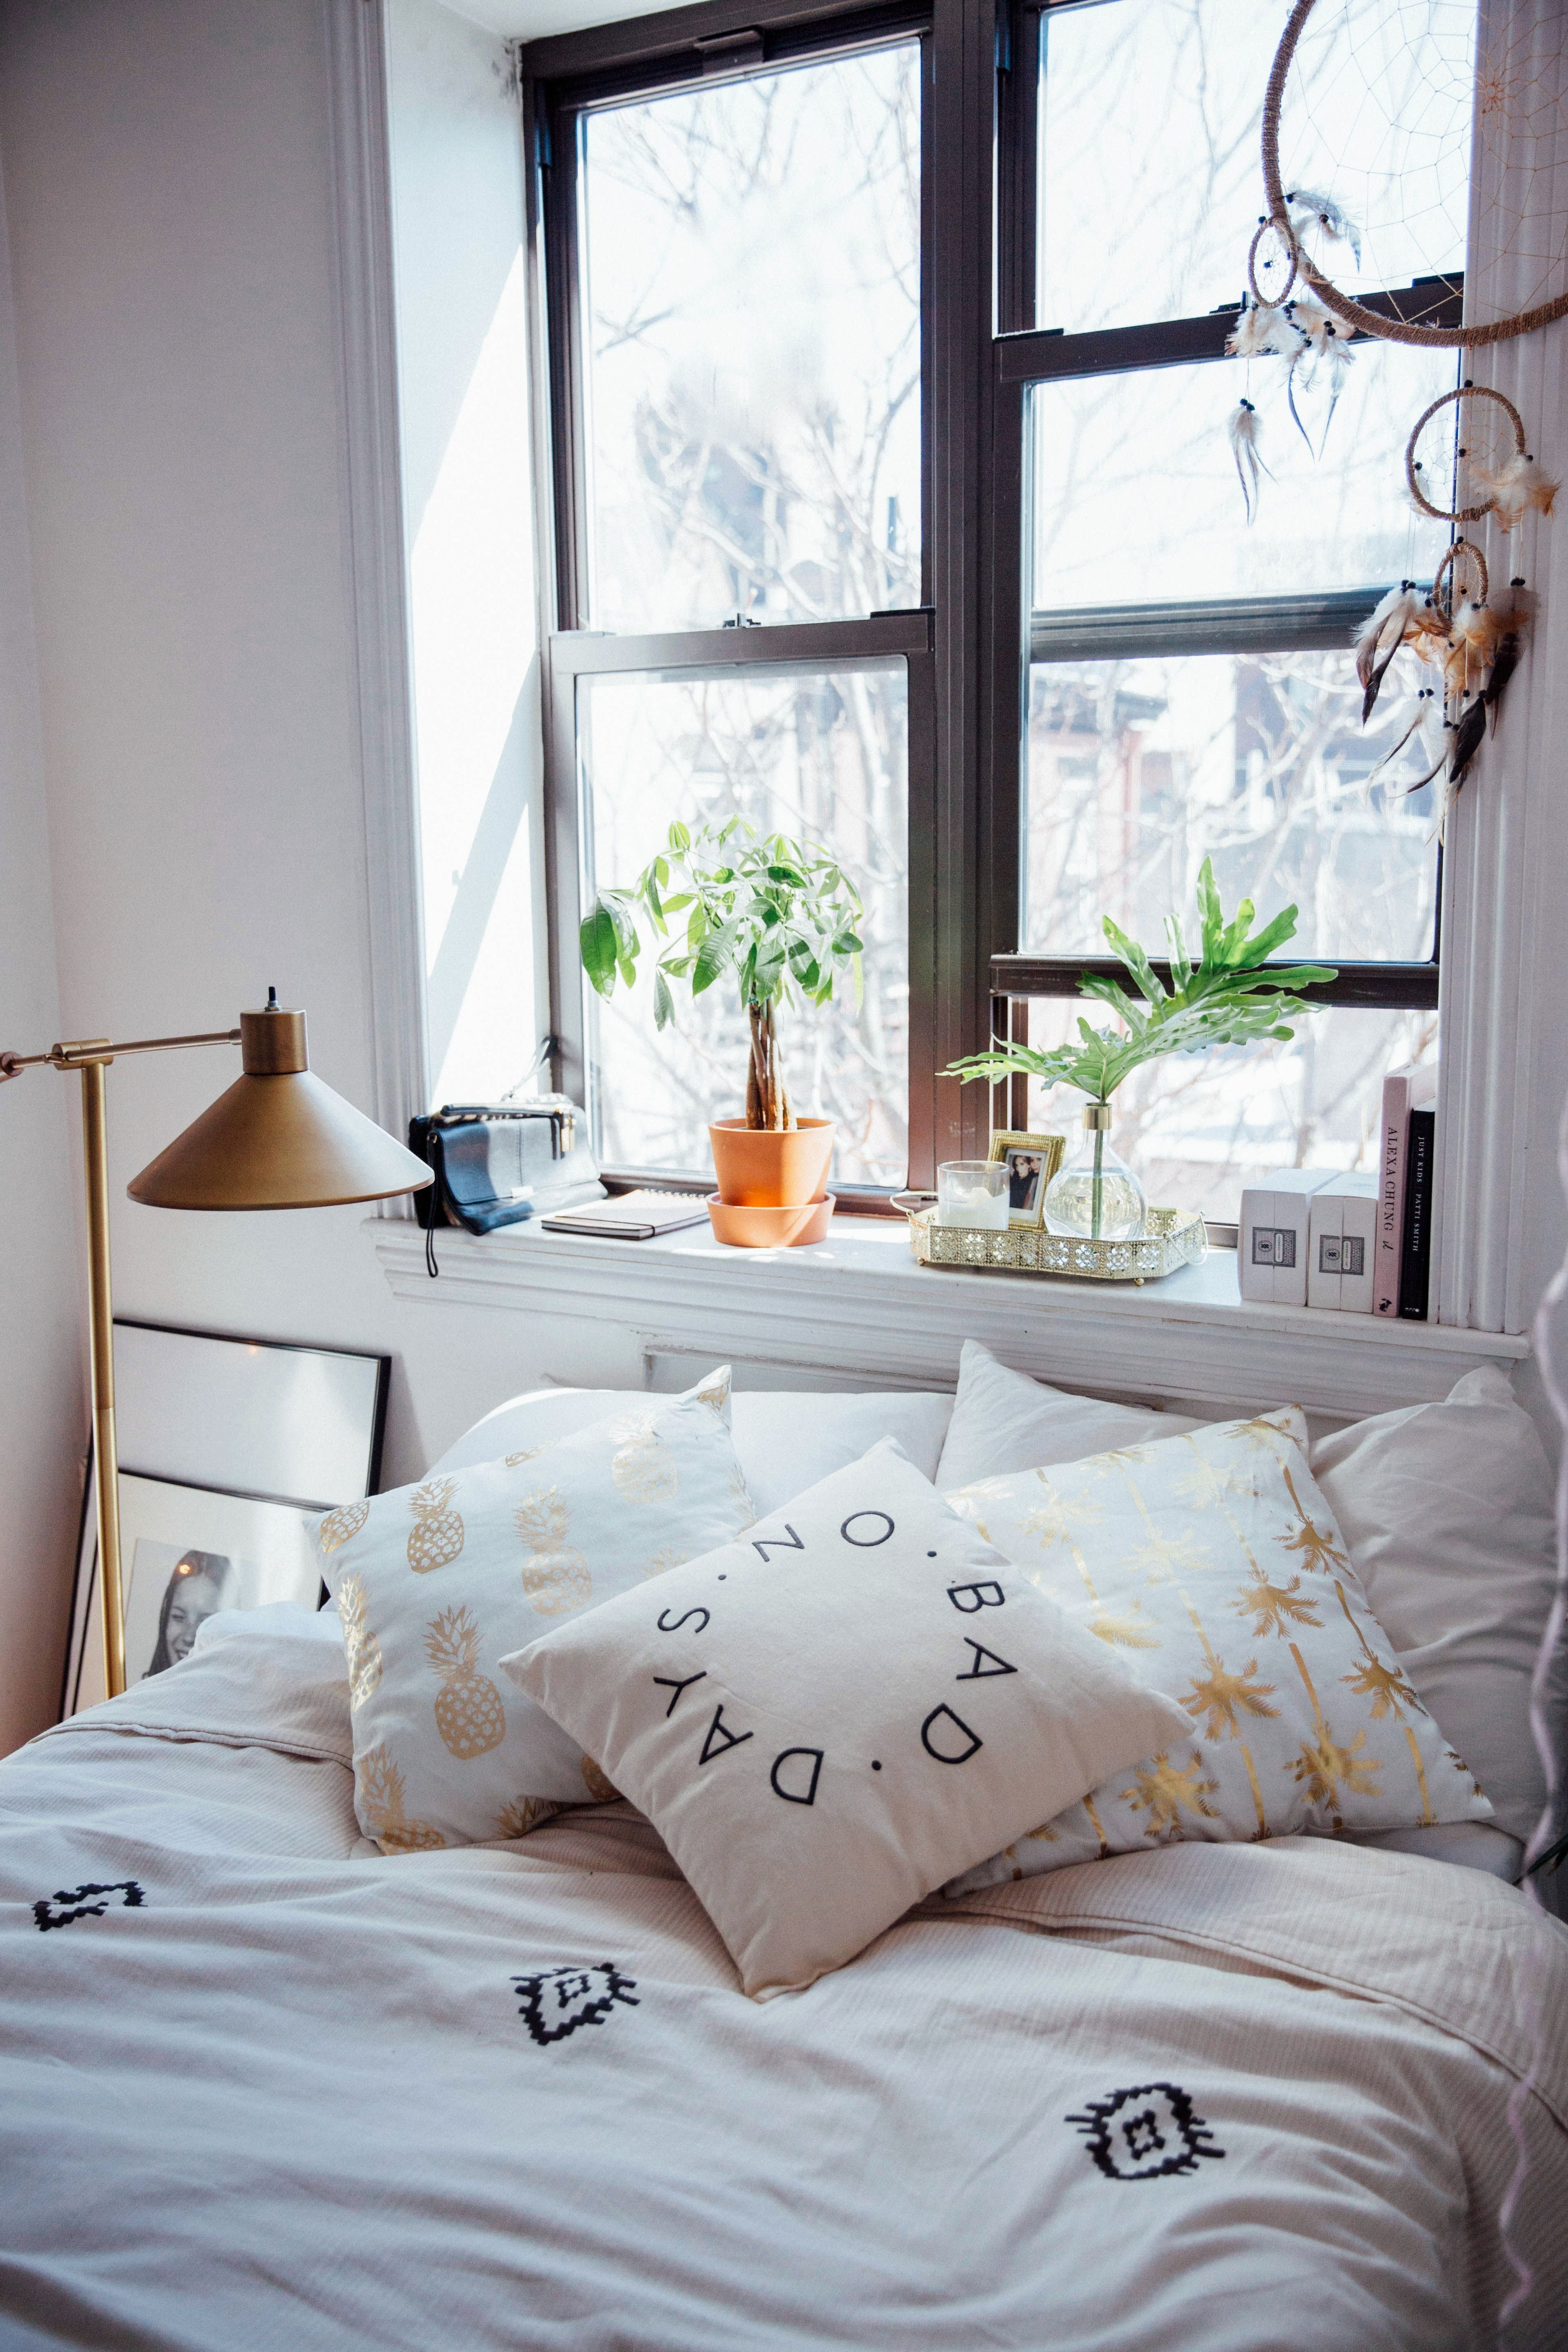 Best Urban Outfitters Blog About A Space Viktoria Dahlberg Bedroom Pinterest Urban With Pictures